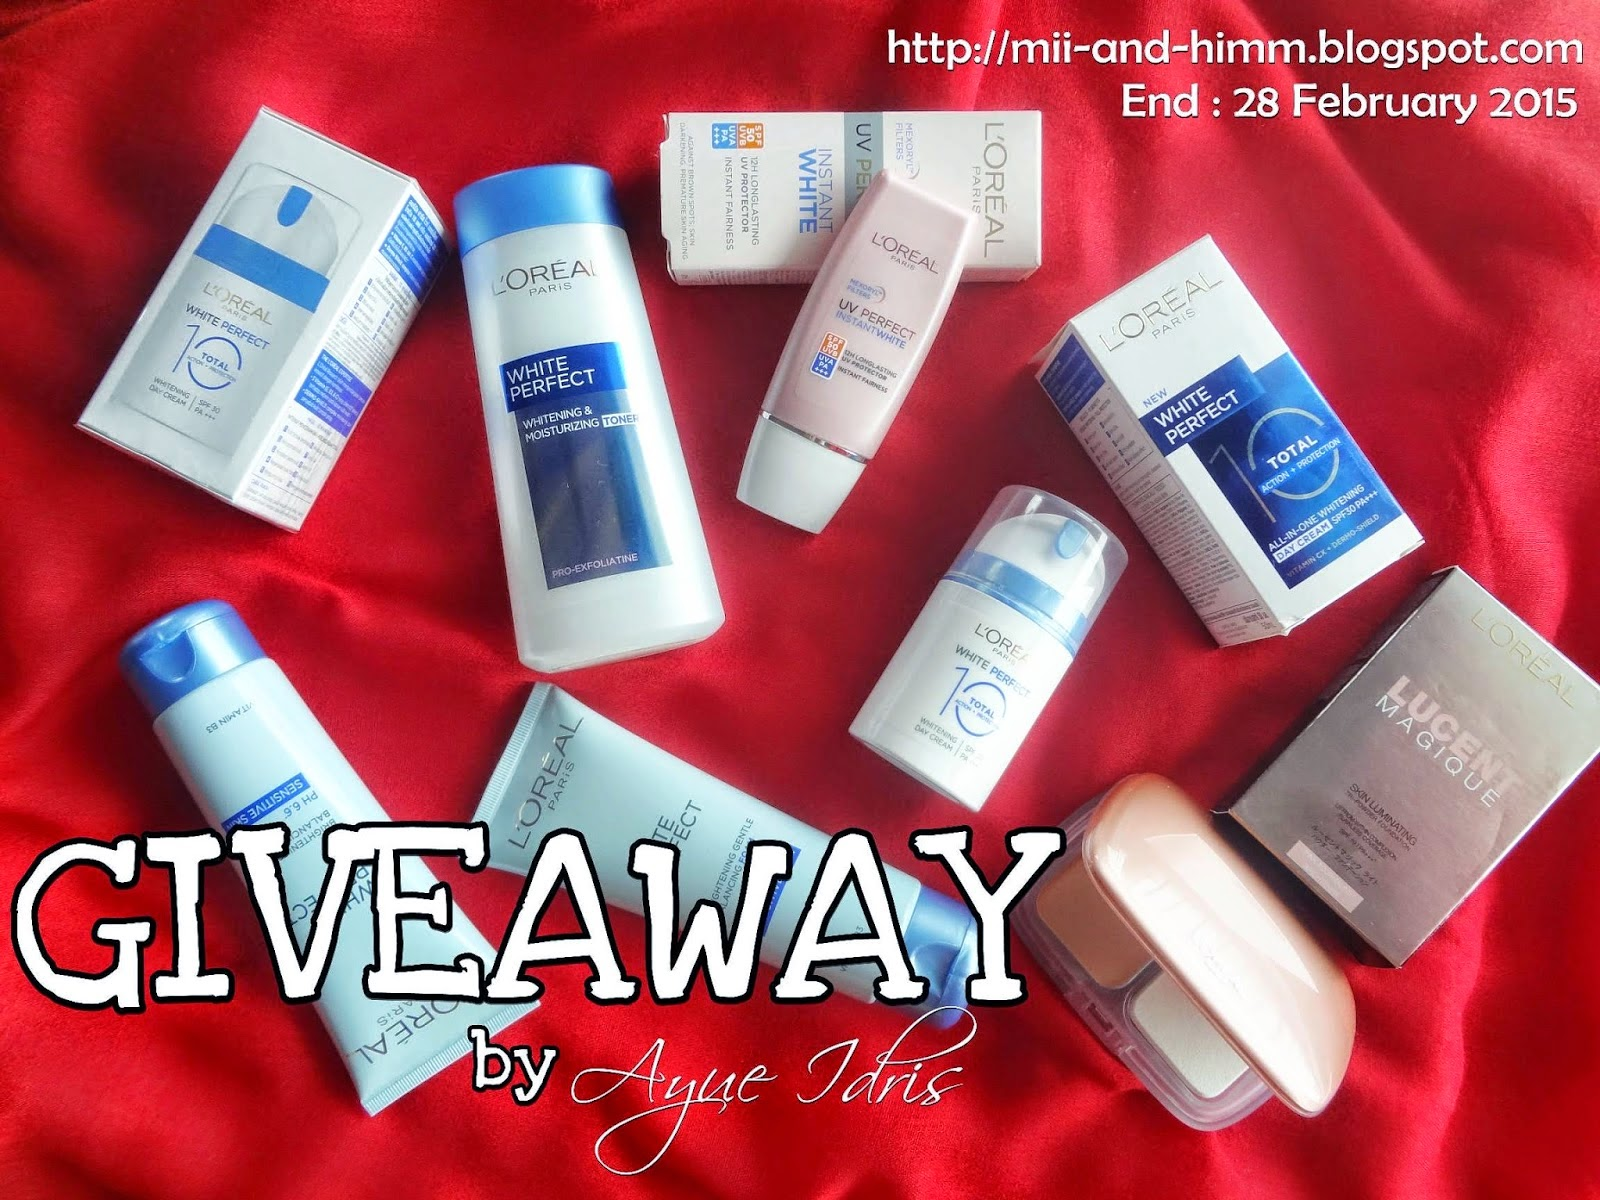 http://mii-and-himm.blogspot.com/2015/02/giveaway-loreal-paris-by-ayue-idris.html